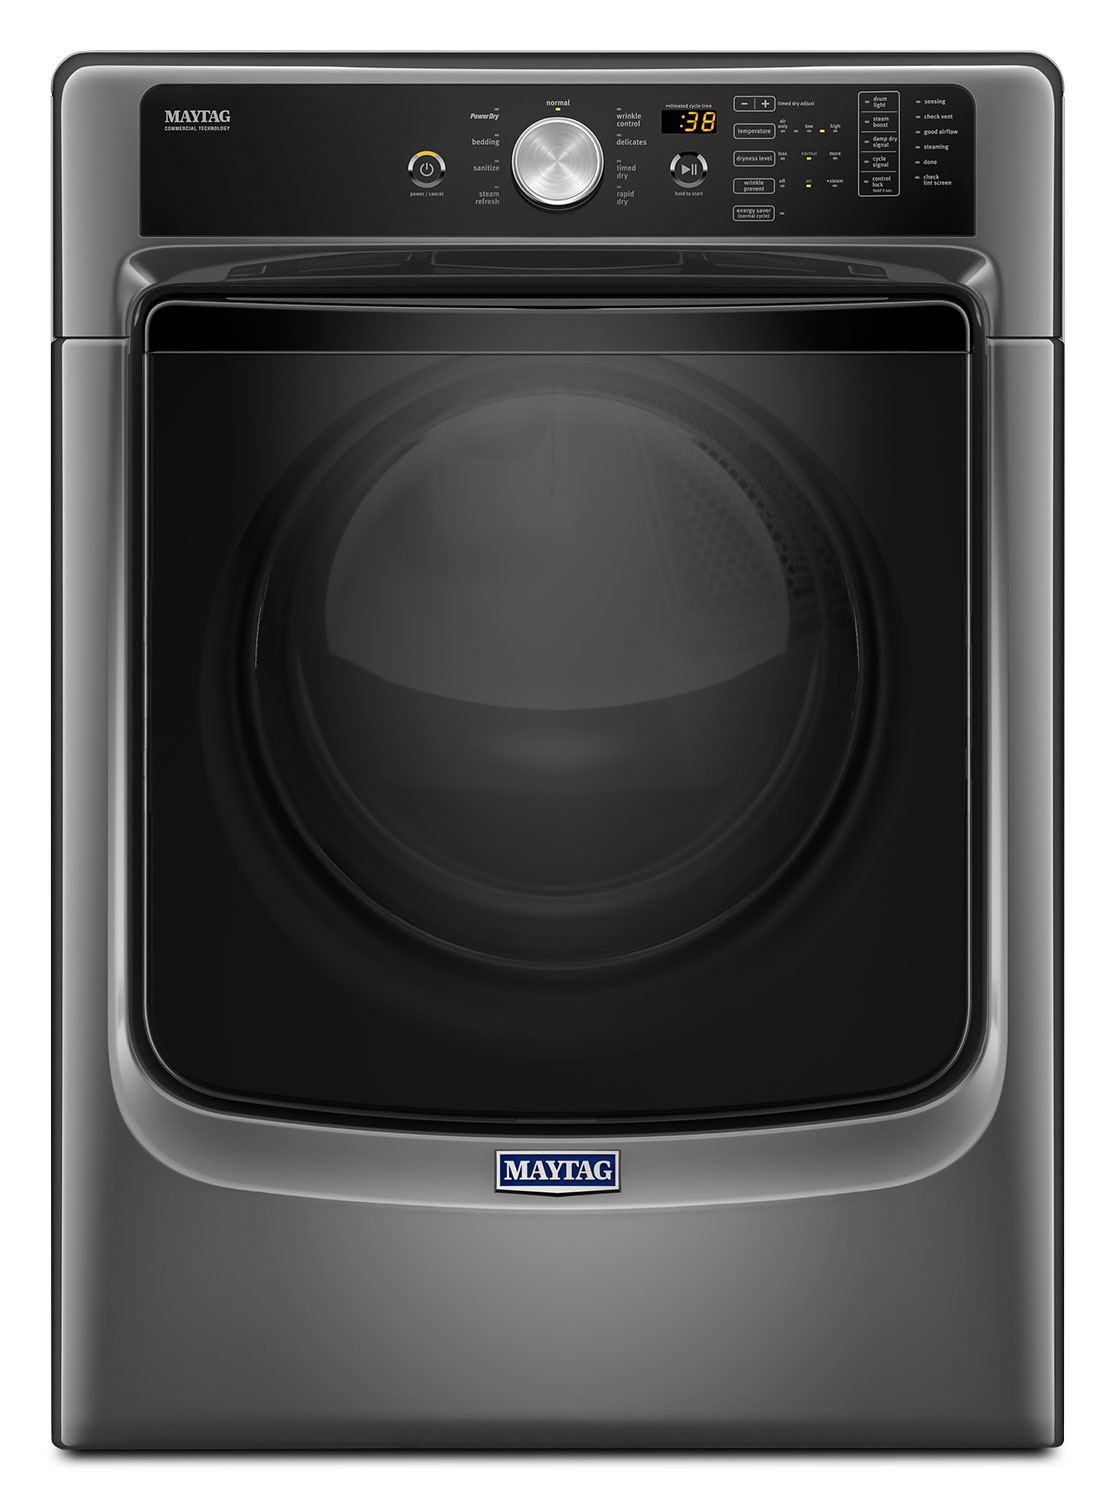 Washers and Dryers - Maytag Metallic Slate Electric Dryer (7.4 Cu. Ft.) - YMED5500FC